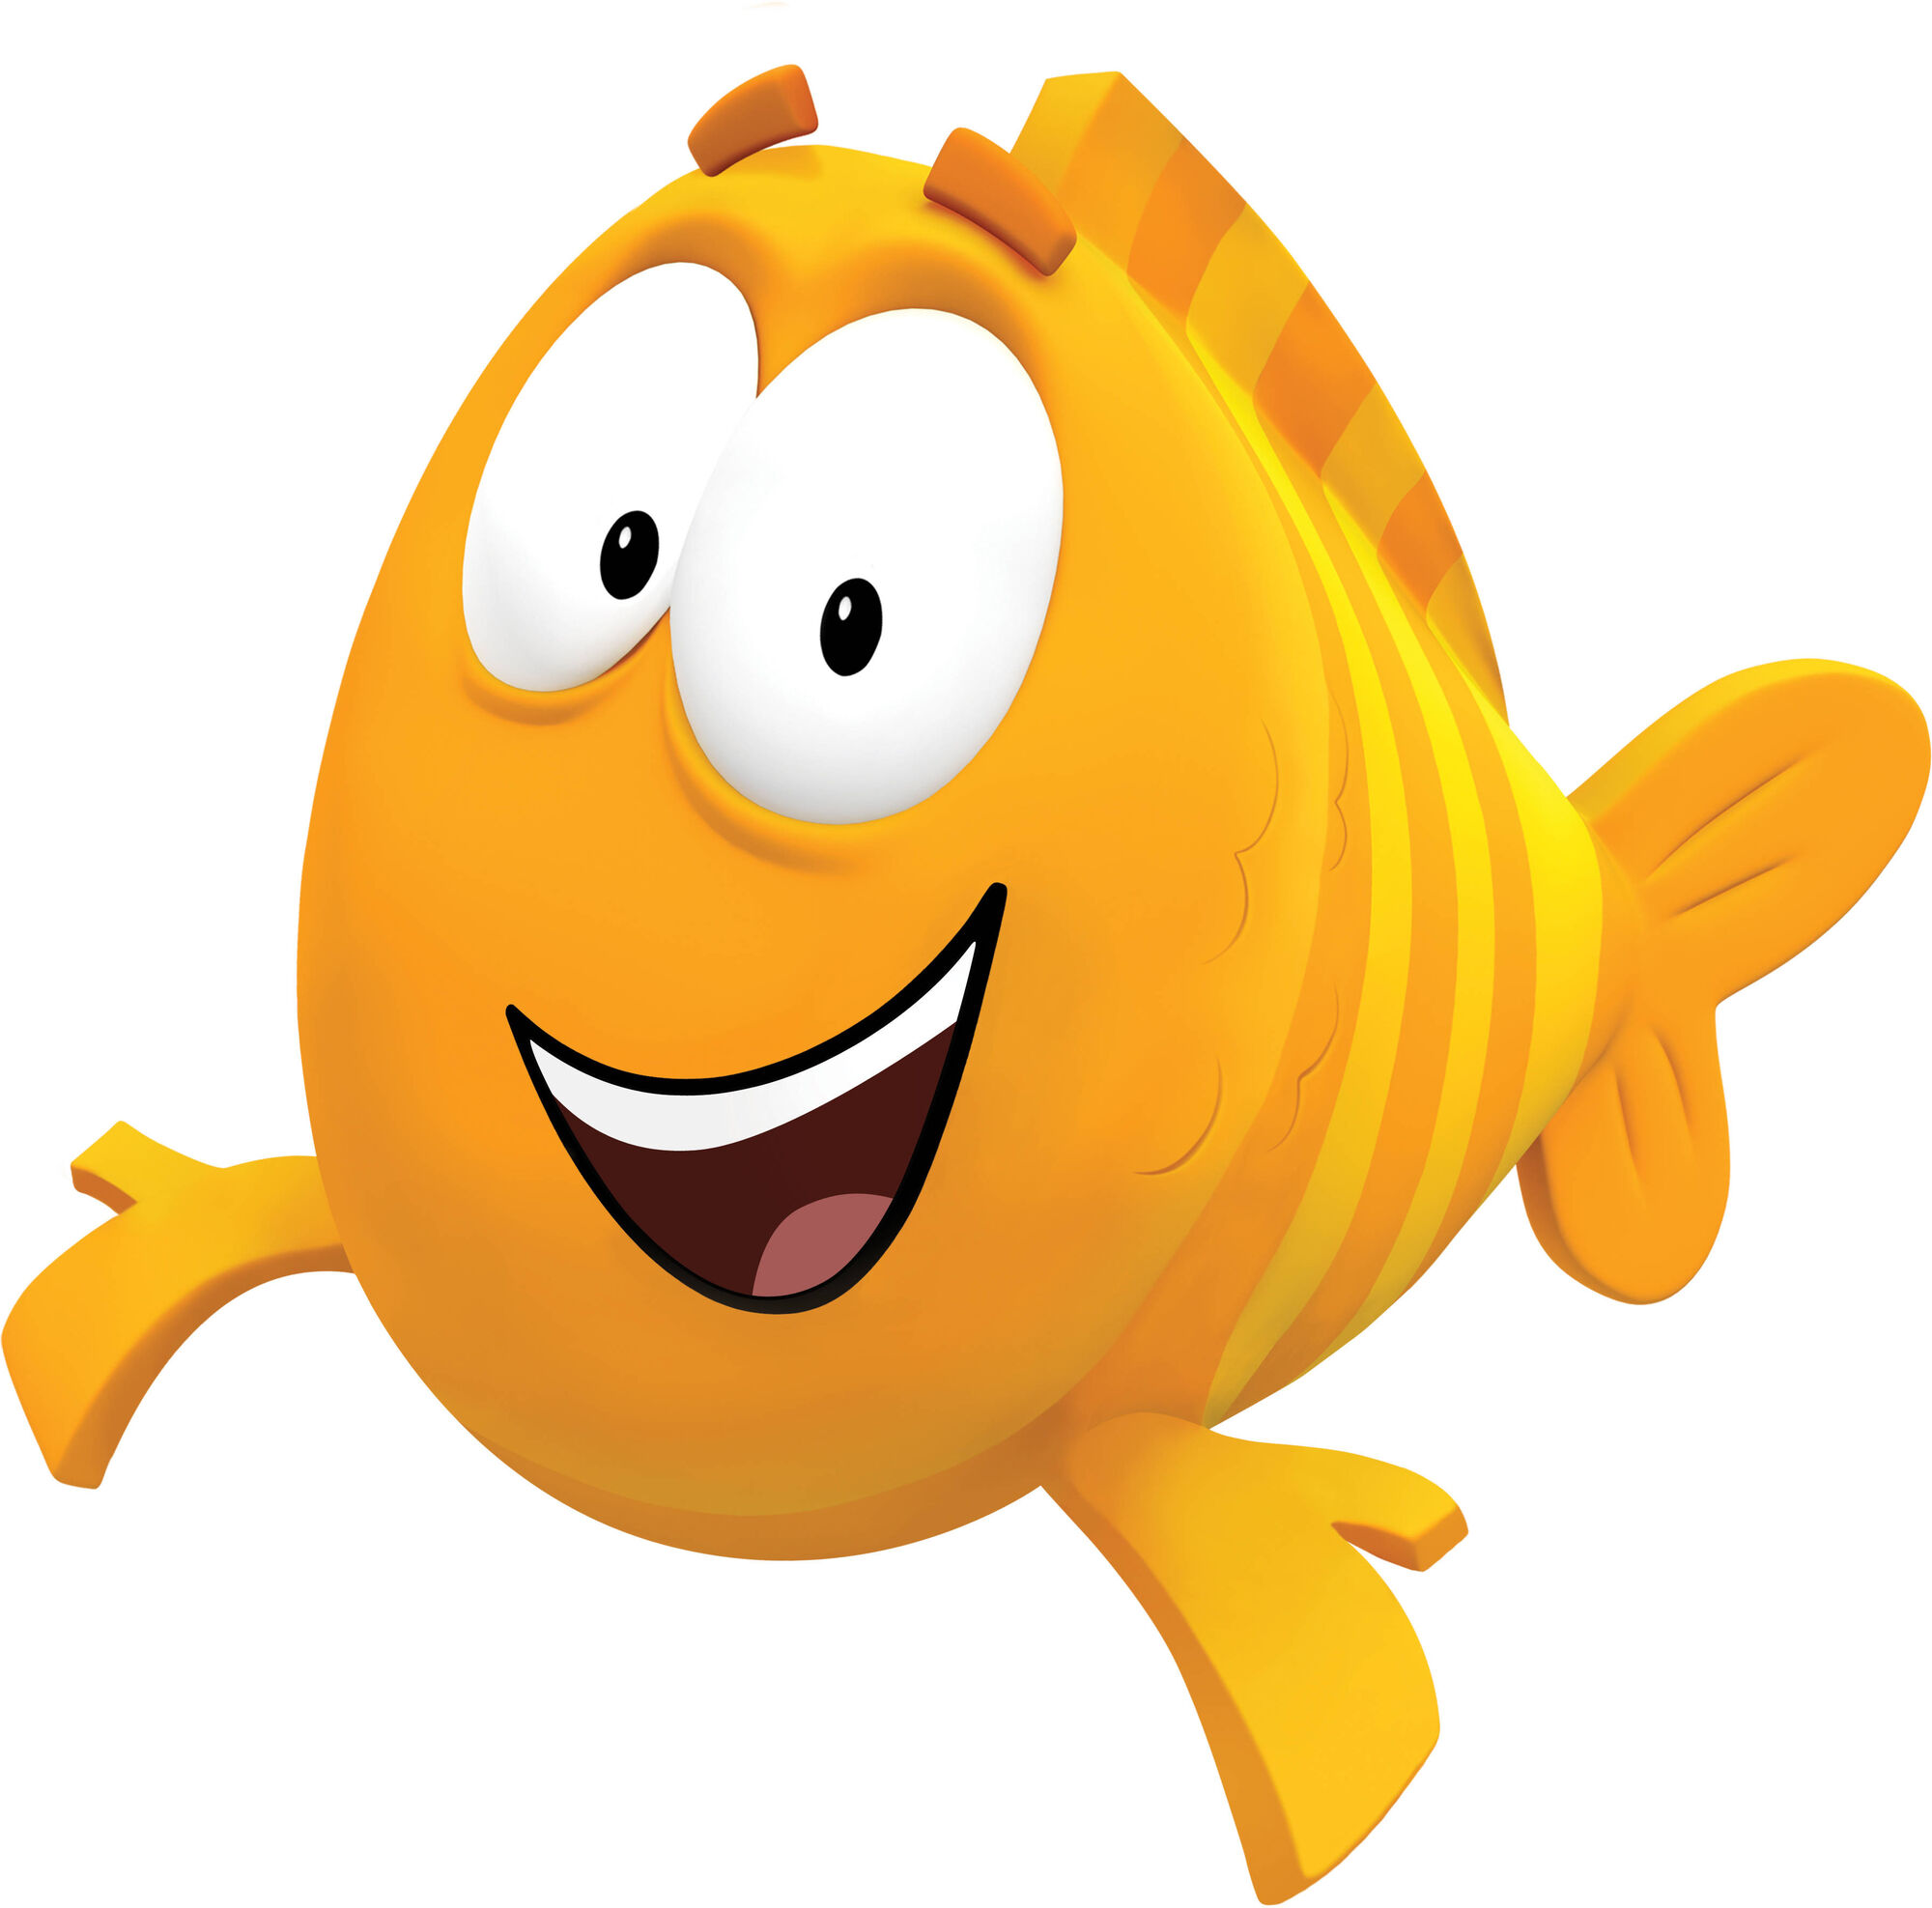 Mr grouper bubble guppies wiki fandom powered by wikia - Bubulles guppies ...